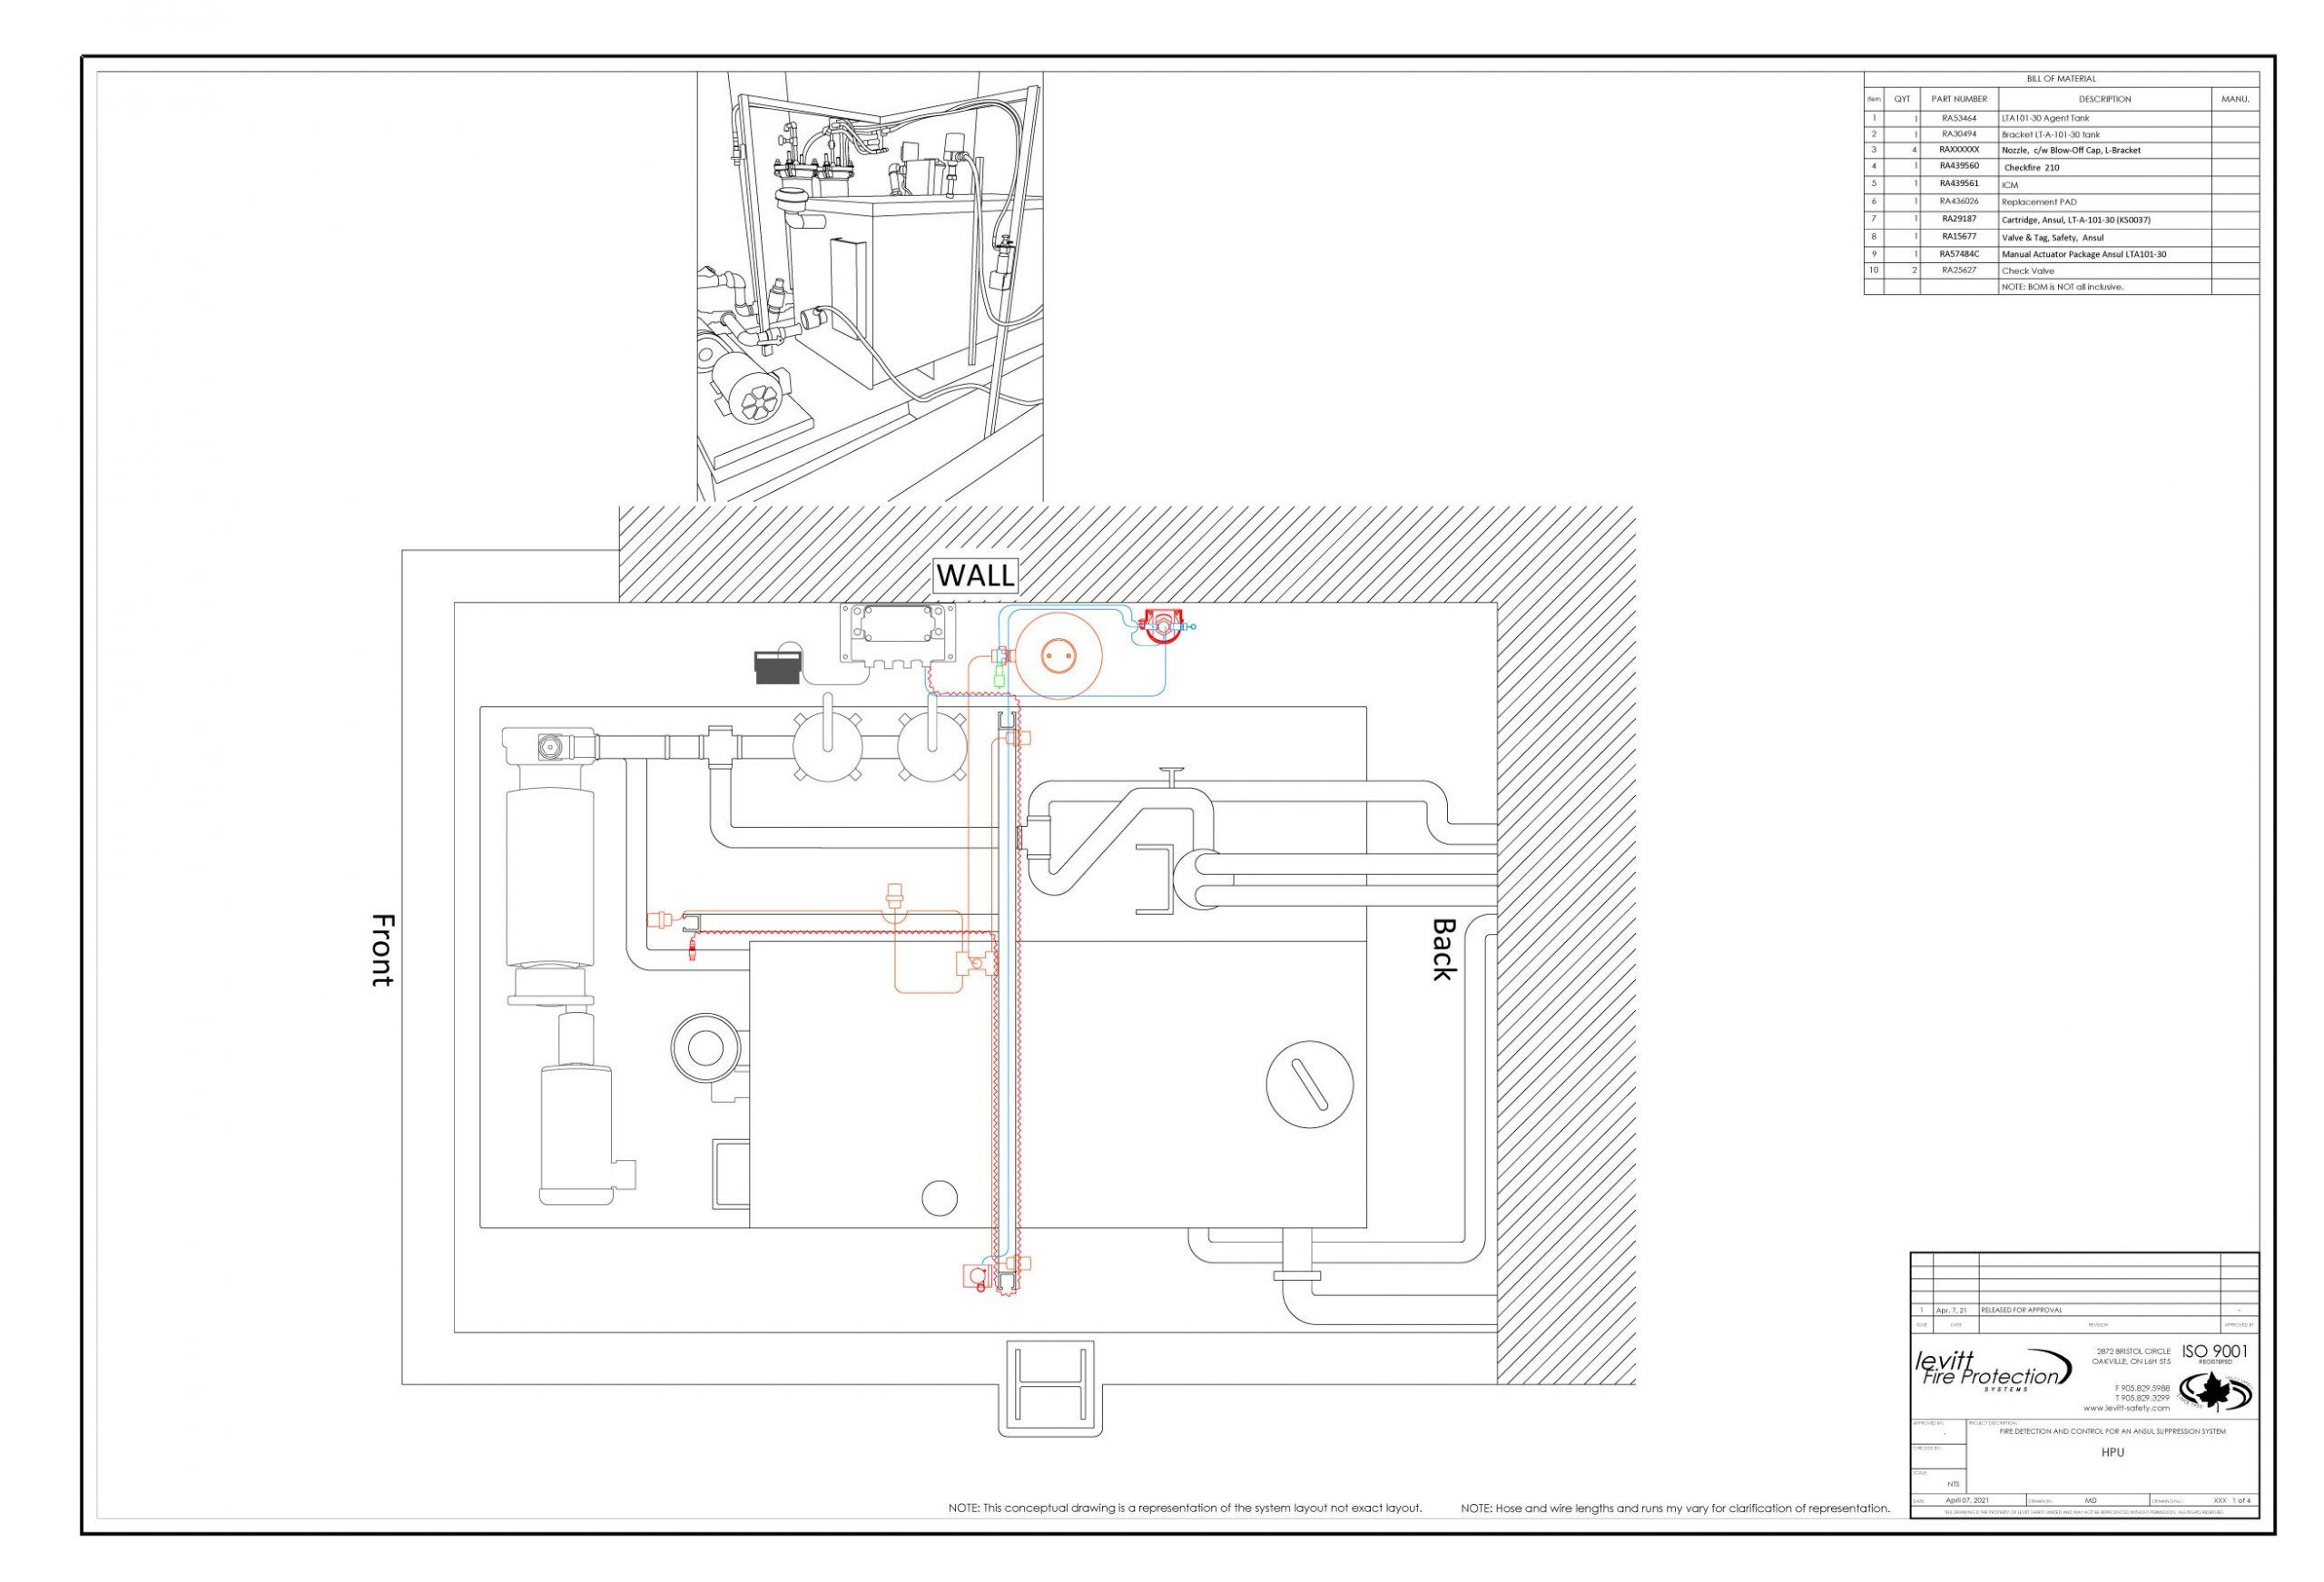 vehicle fire suppression system CAD drawing